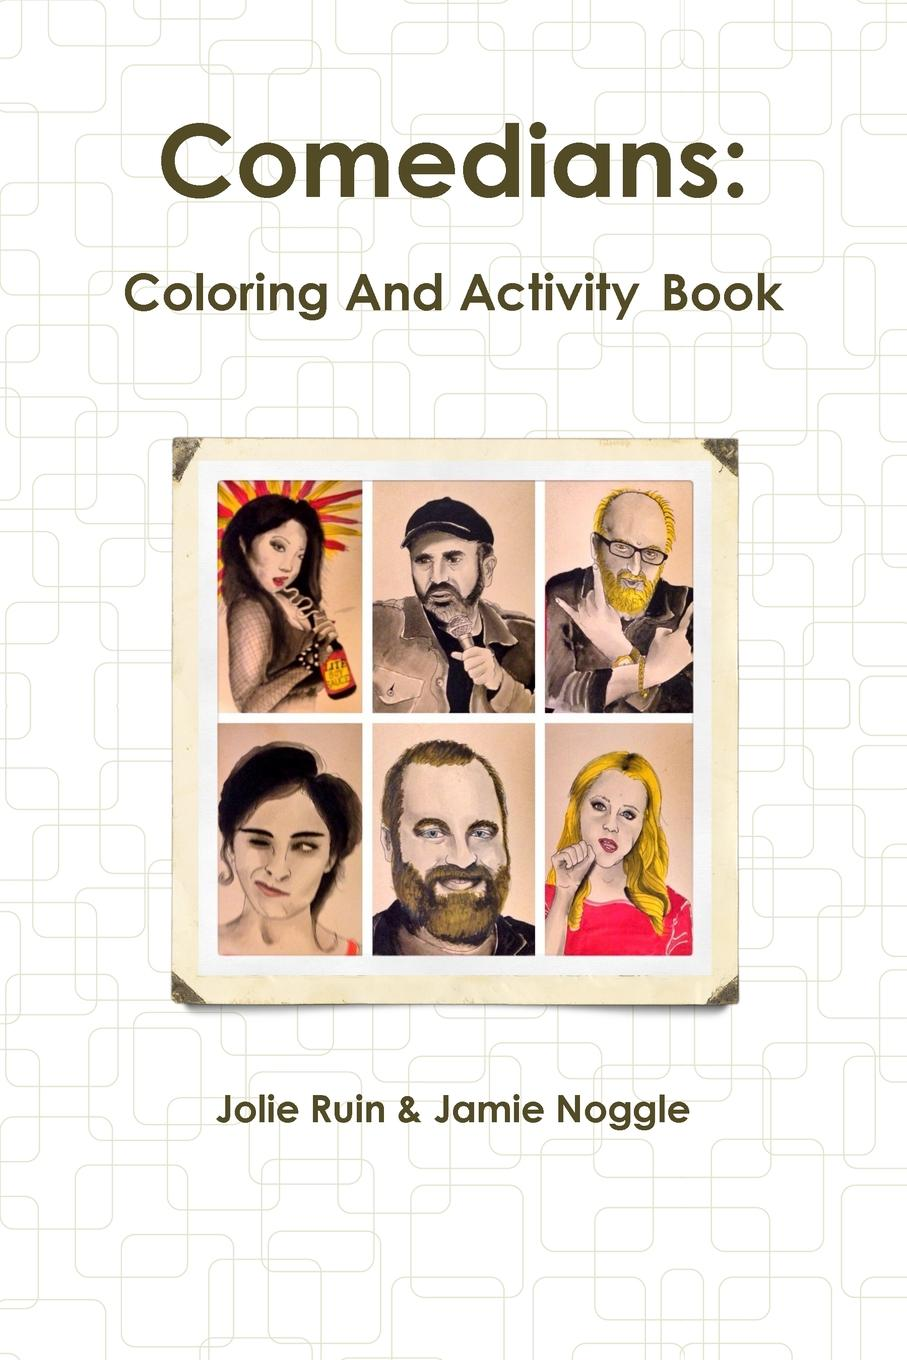 Jolie Ruin Comedians. Coloring And Activity Book